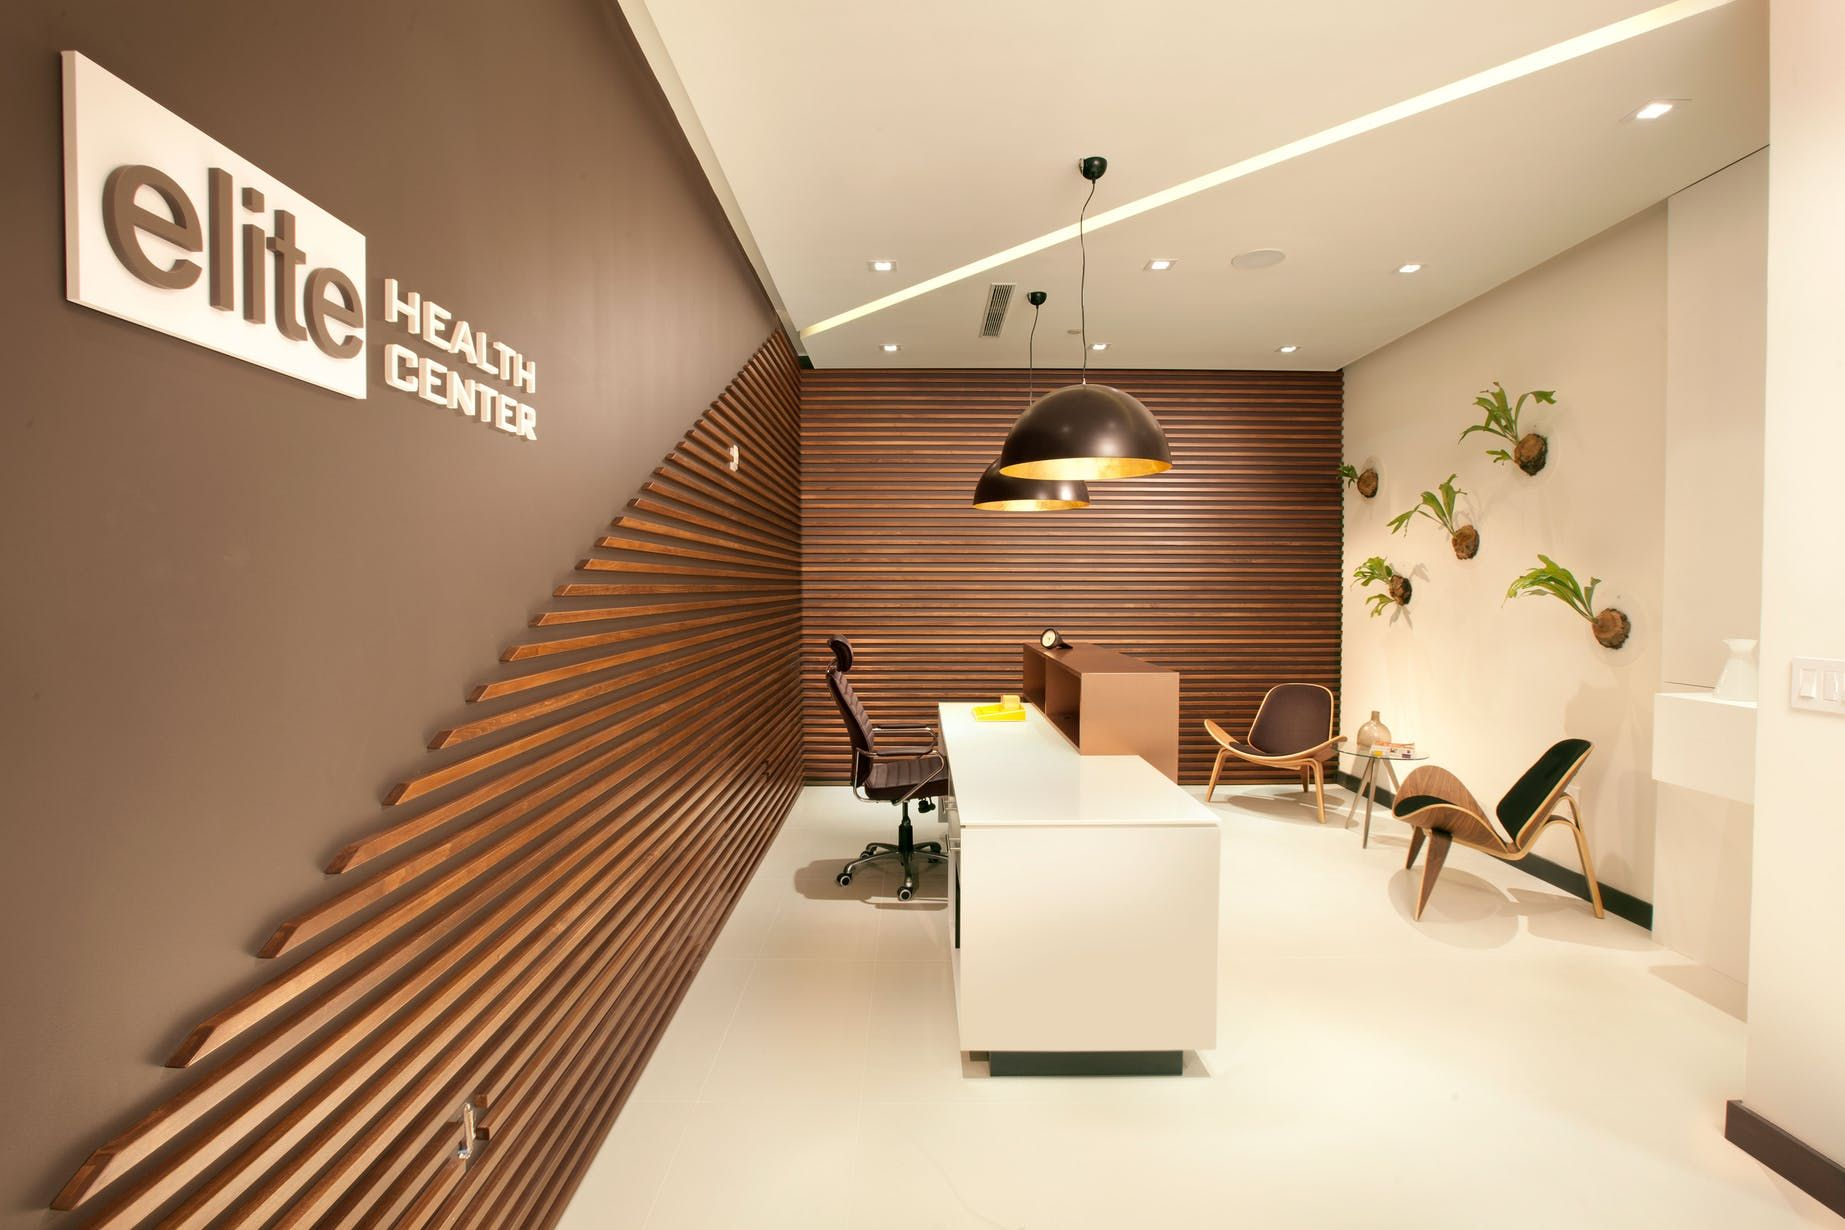 Miami Modern Scandinavian Medical Office With Images Modern